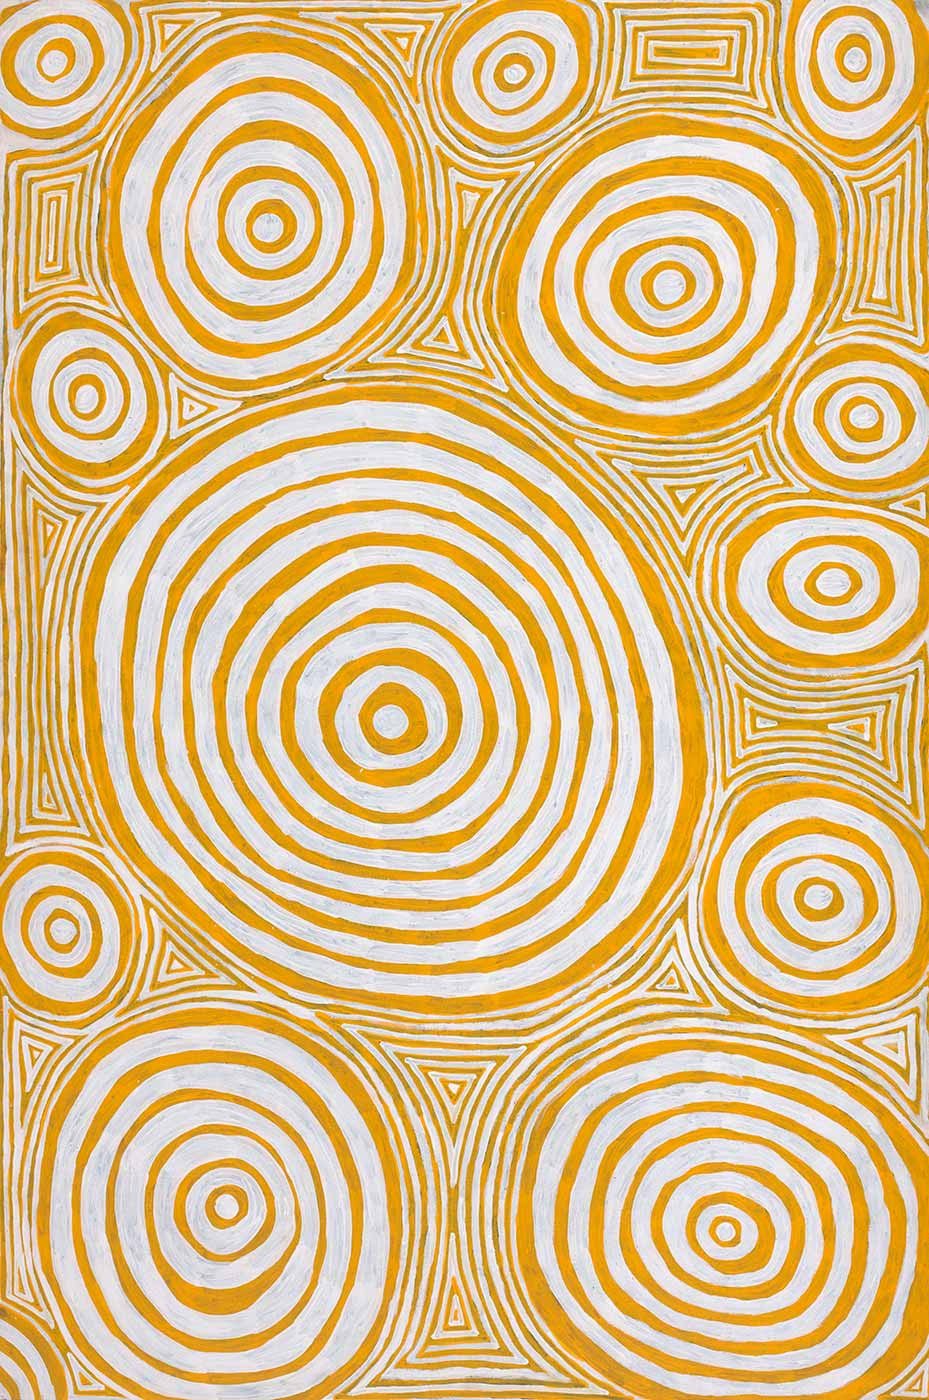 An acrylic on canvas circle and line painting. Several yellow and white circles are depicted across the painting with identical coloured lines in between. - click to view larger image